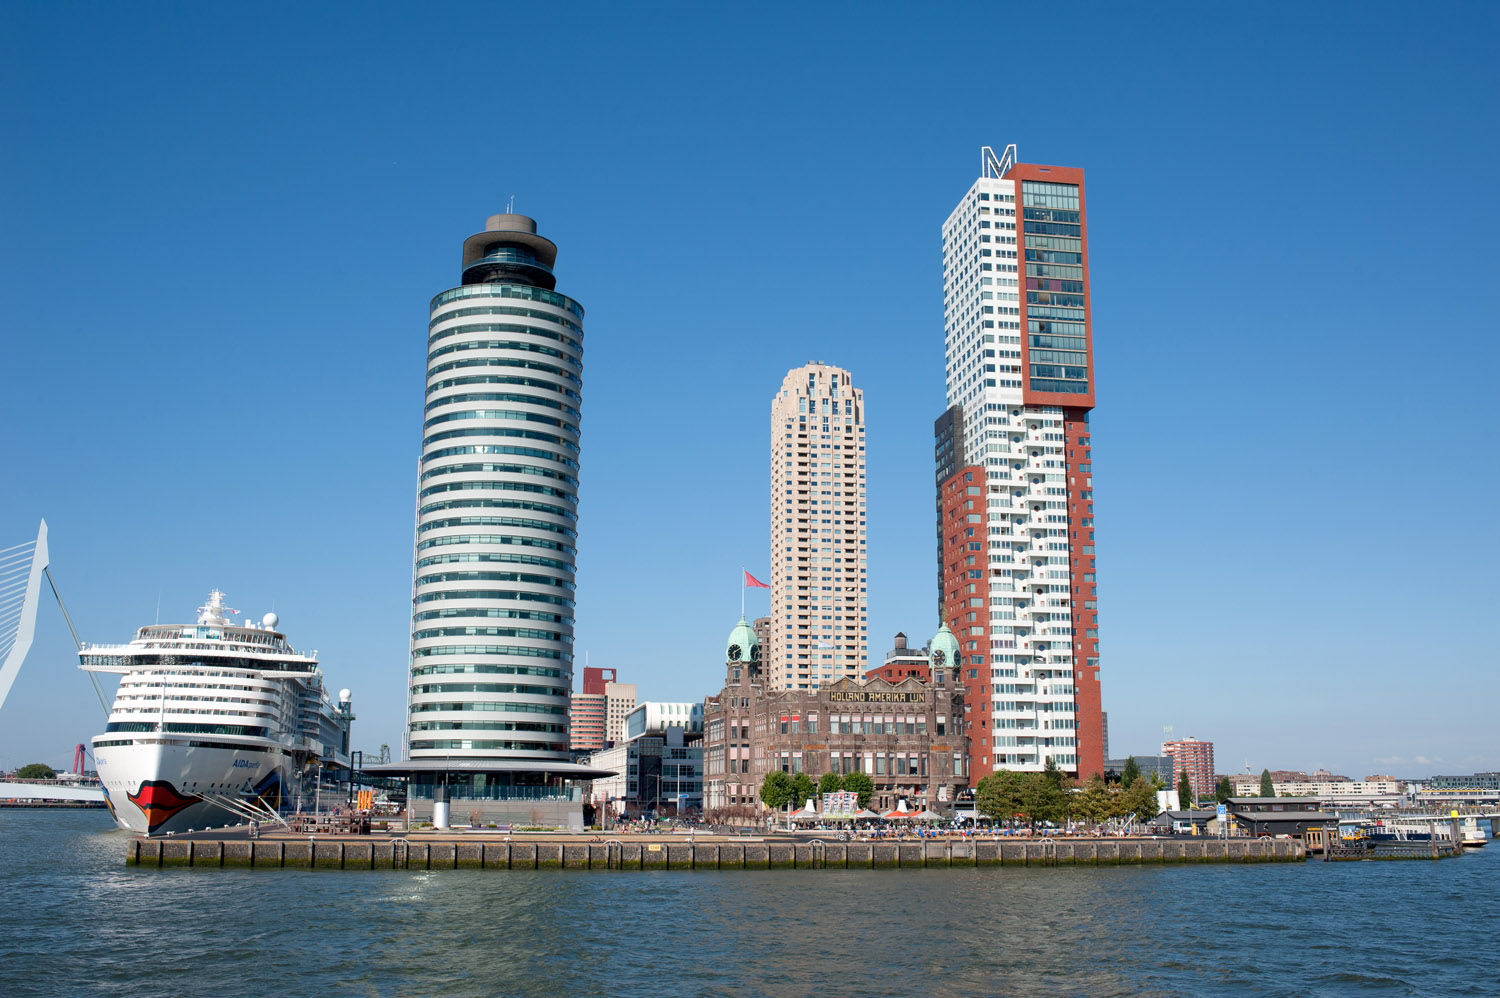 Rotterdam_City guide_Hotel New York4jpg.jpg